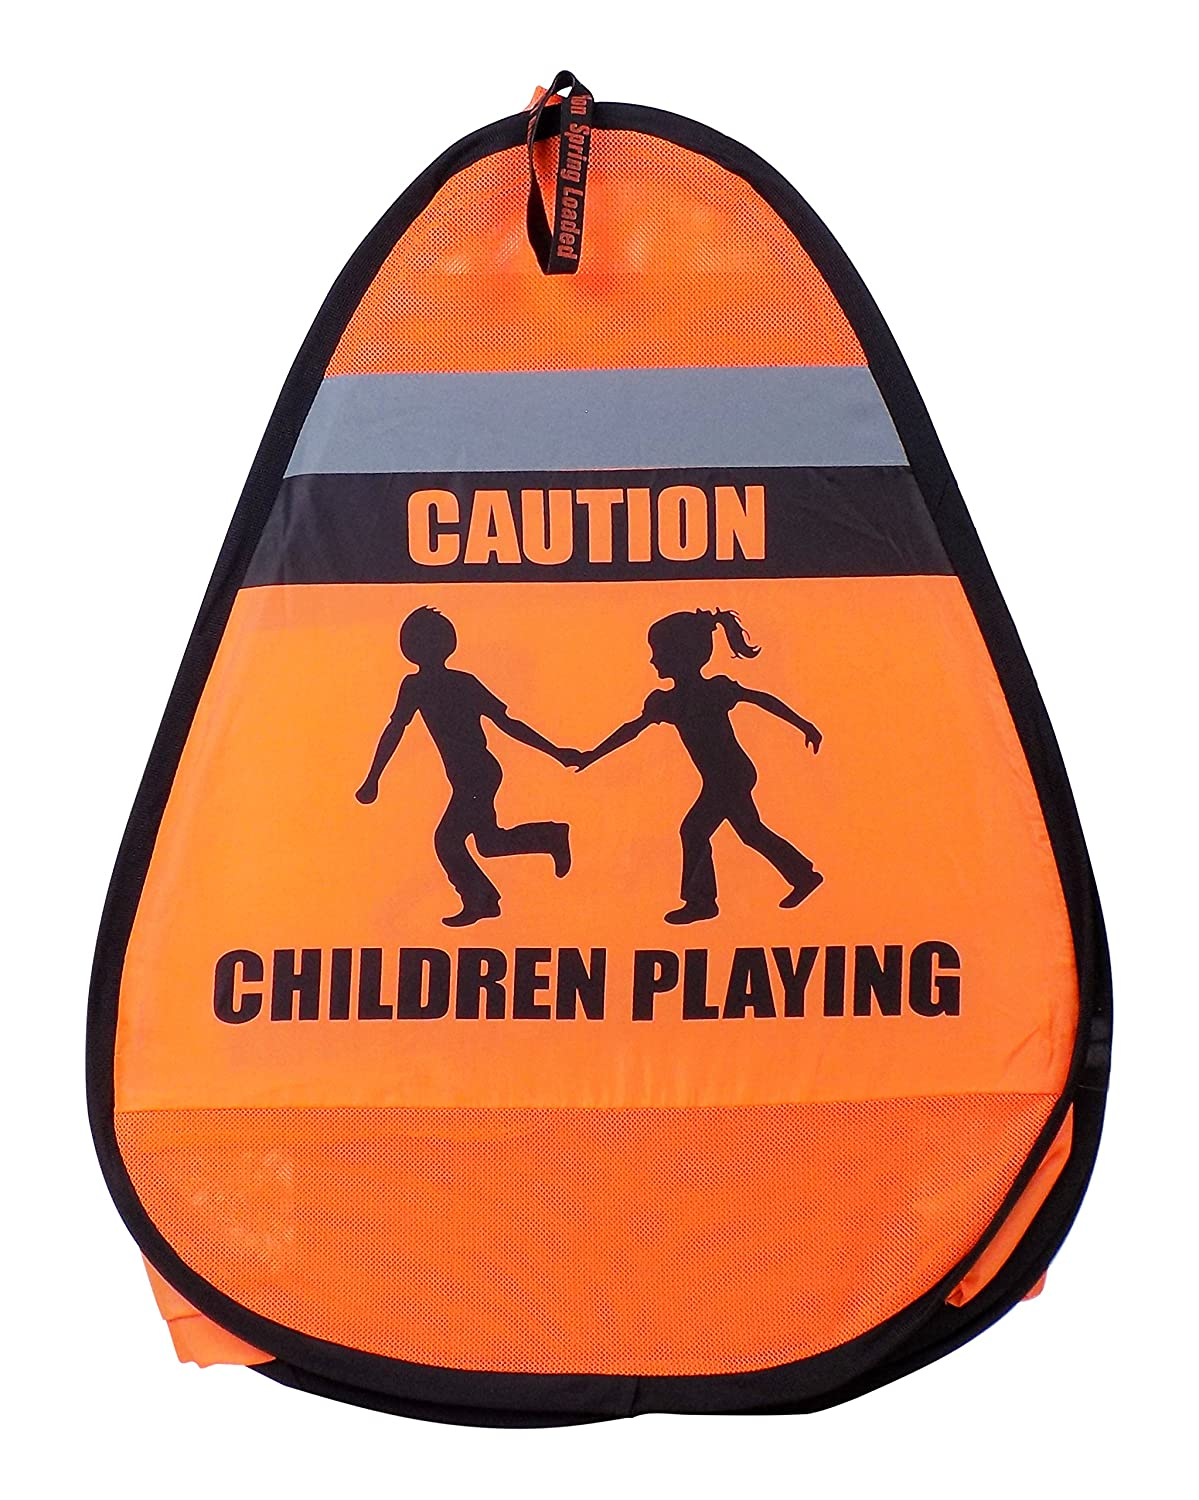 Novus Children Playing Orange Pop Up Safety Cone Sign with Reflective Tape